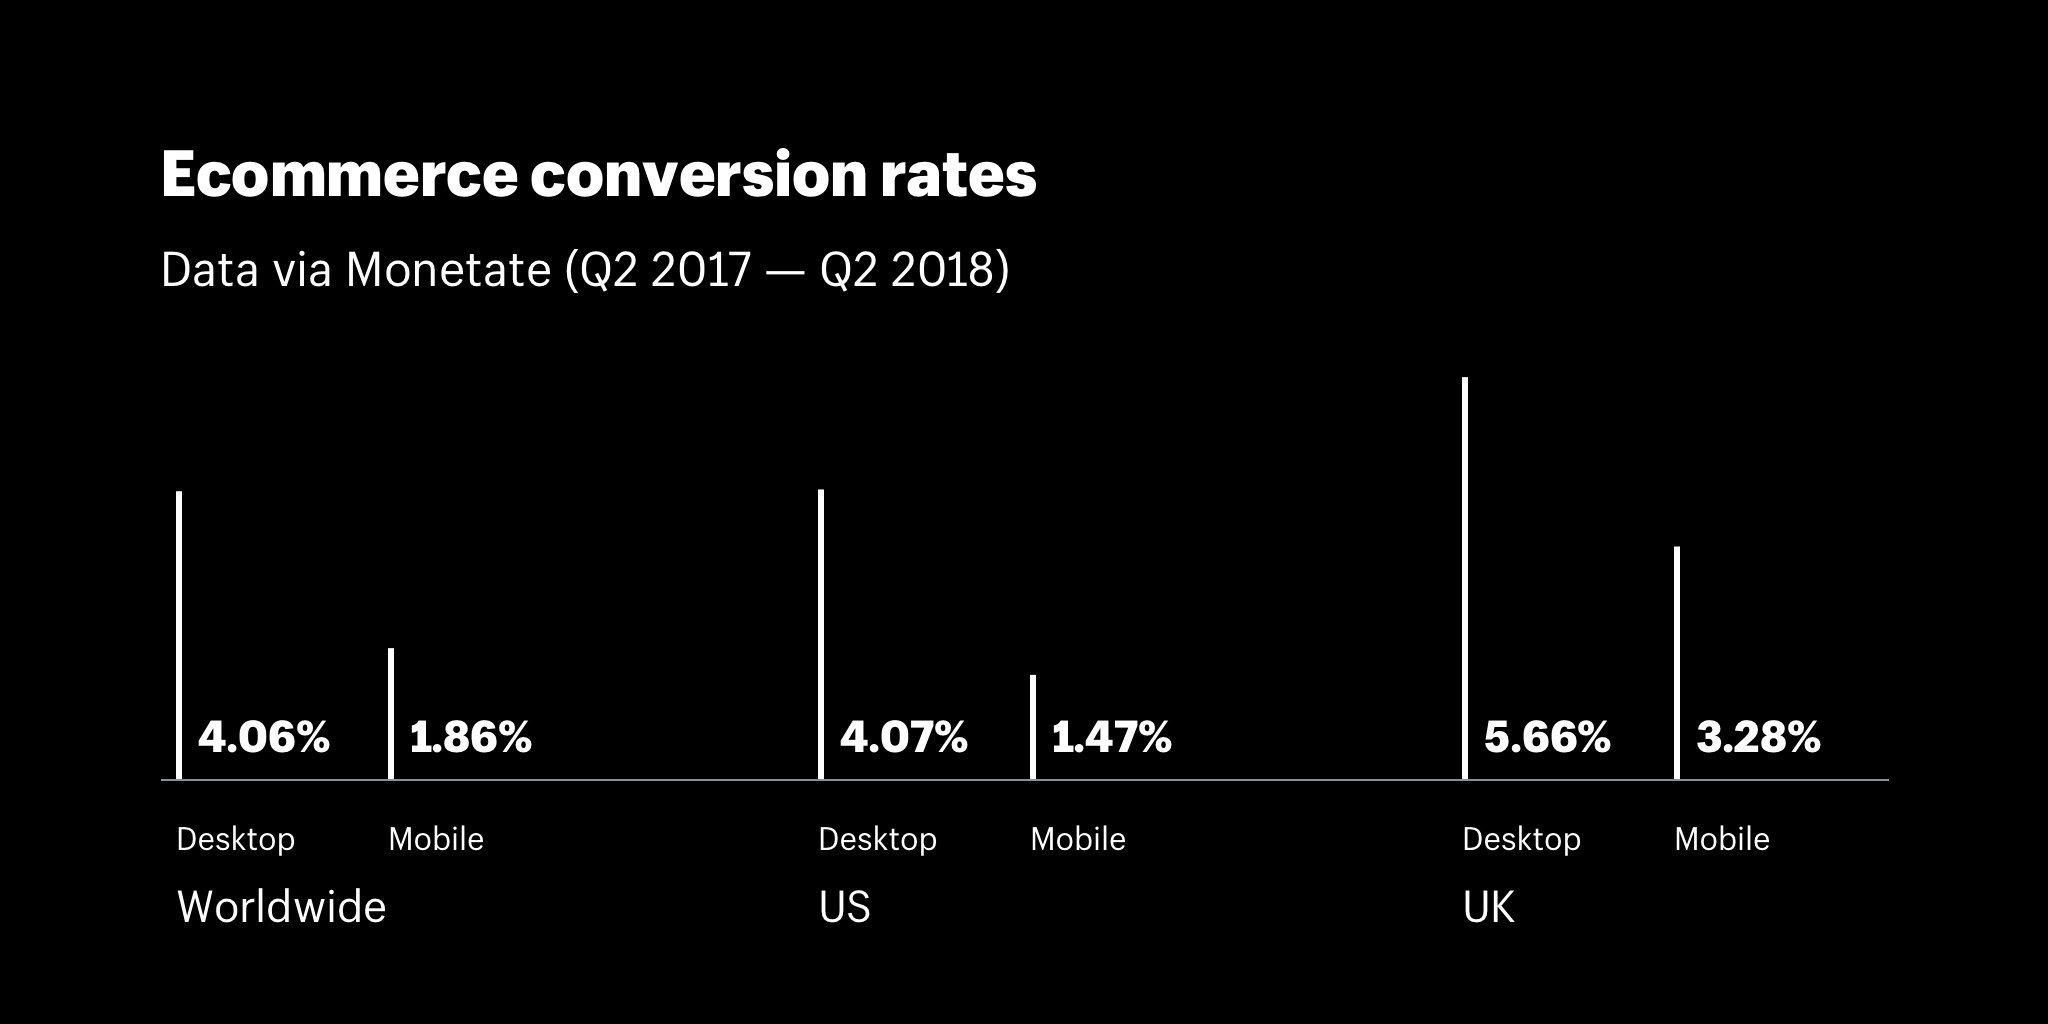 Ecommerce conversion rates by device and location